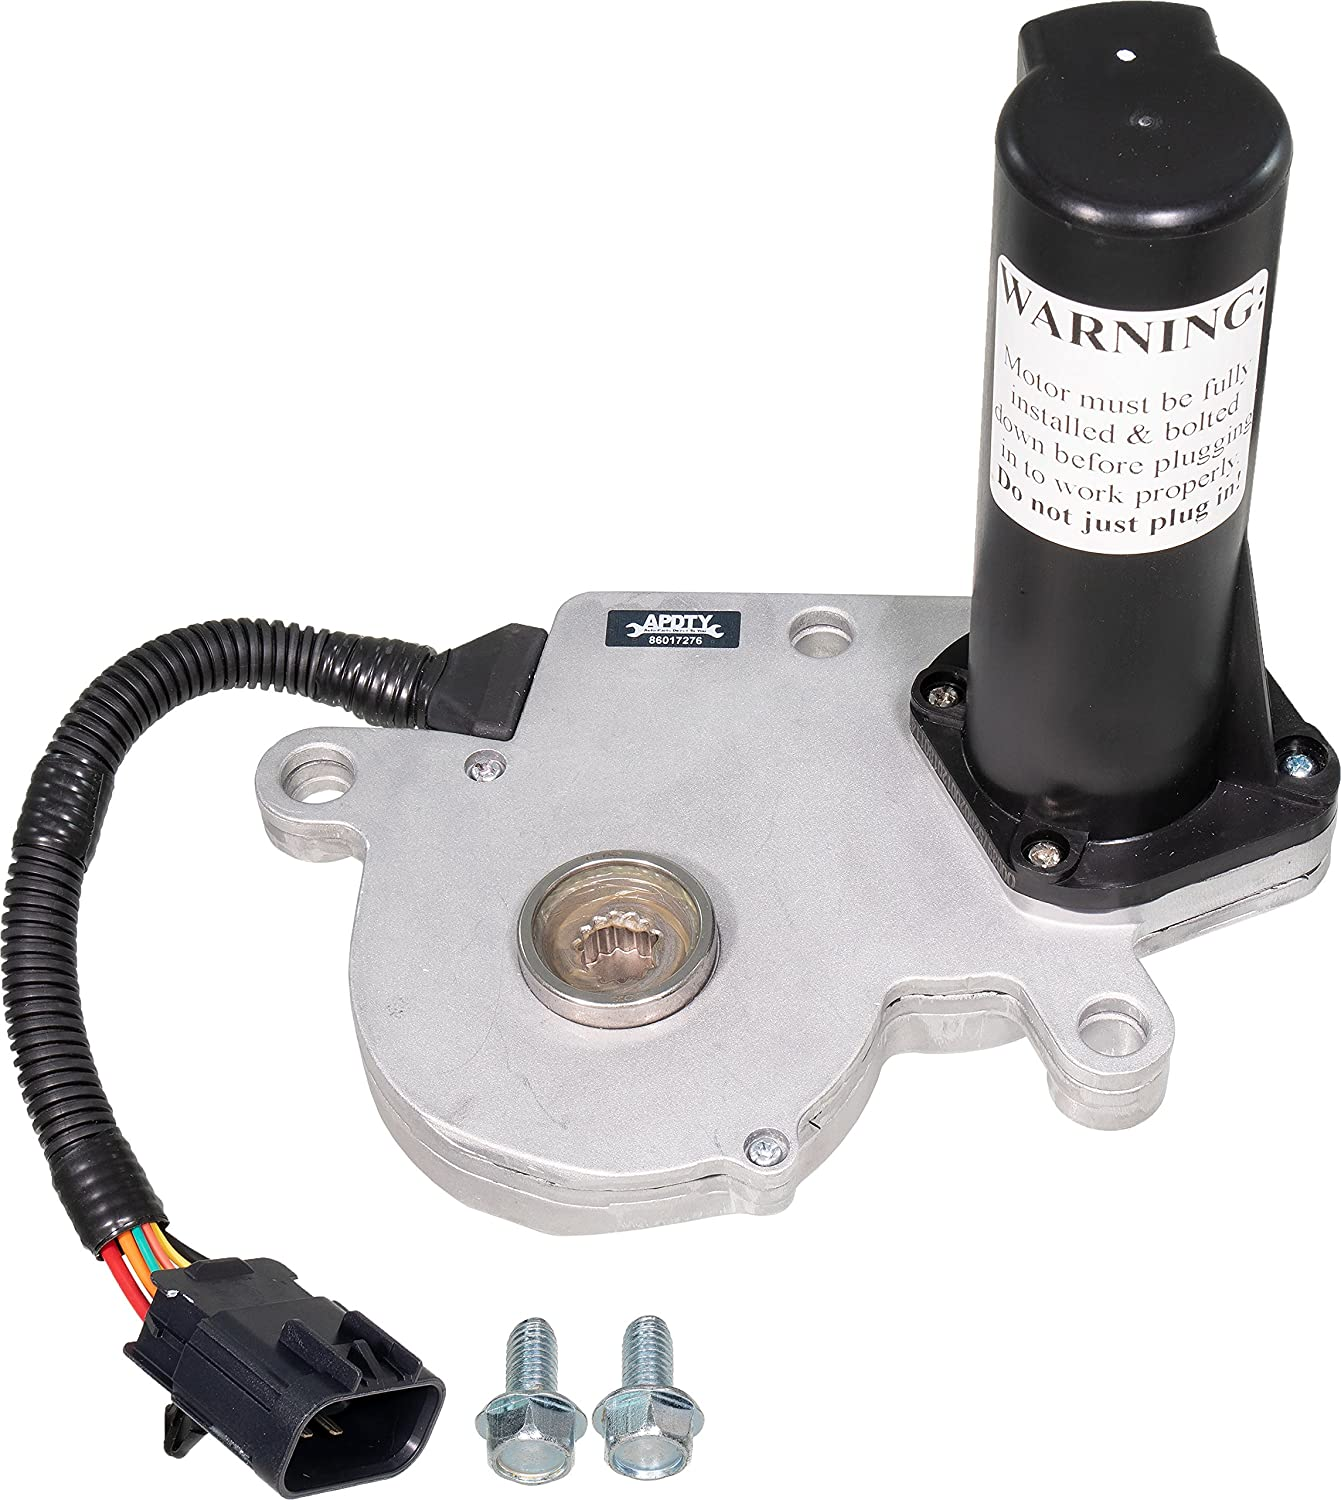 Apdty 711021 Transfer Case Shift Encoder Motor For 2003 O4 Tahoe Fuse Box Decoder 2007 Chevy Gmc Trucks W 4 Wheel Drive 4wd 4x4 Replaces Gm 19125640